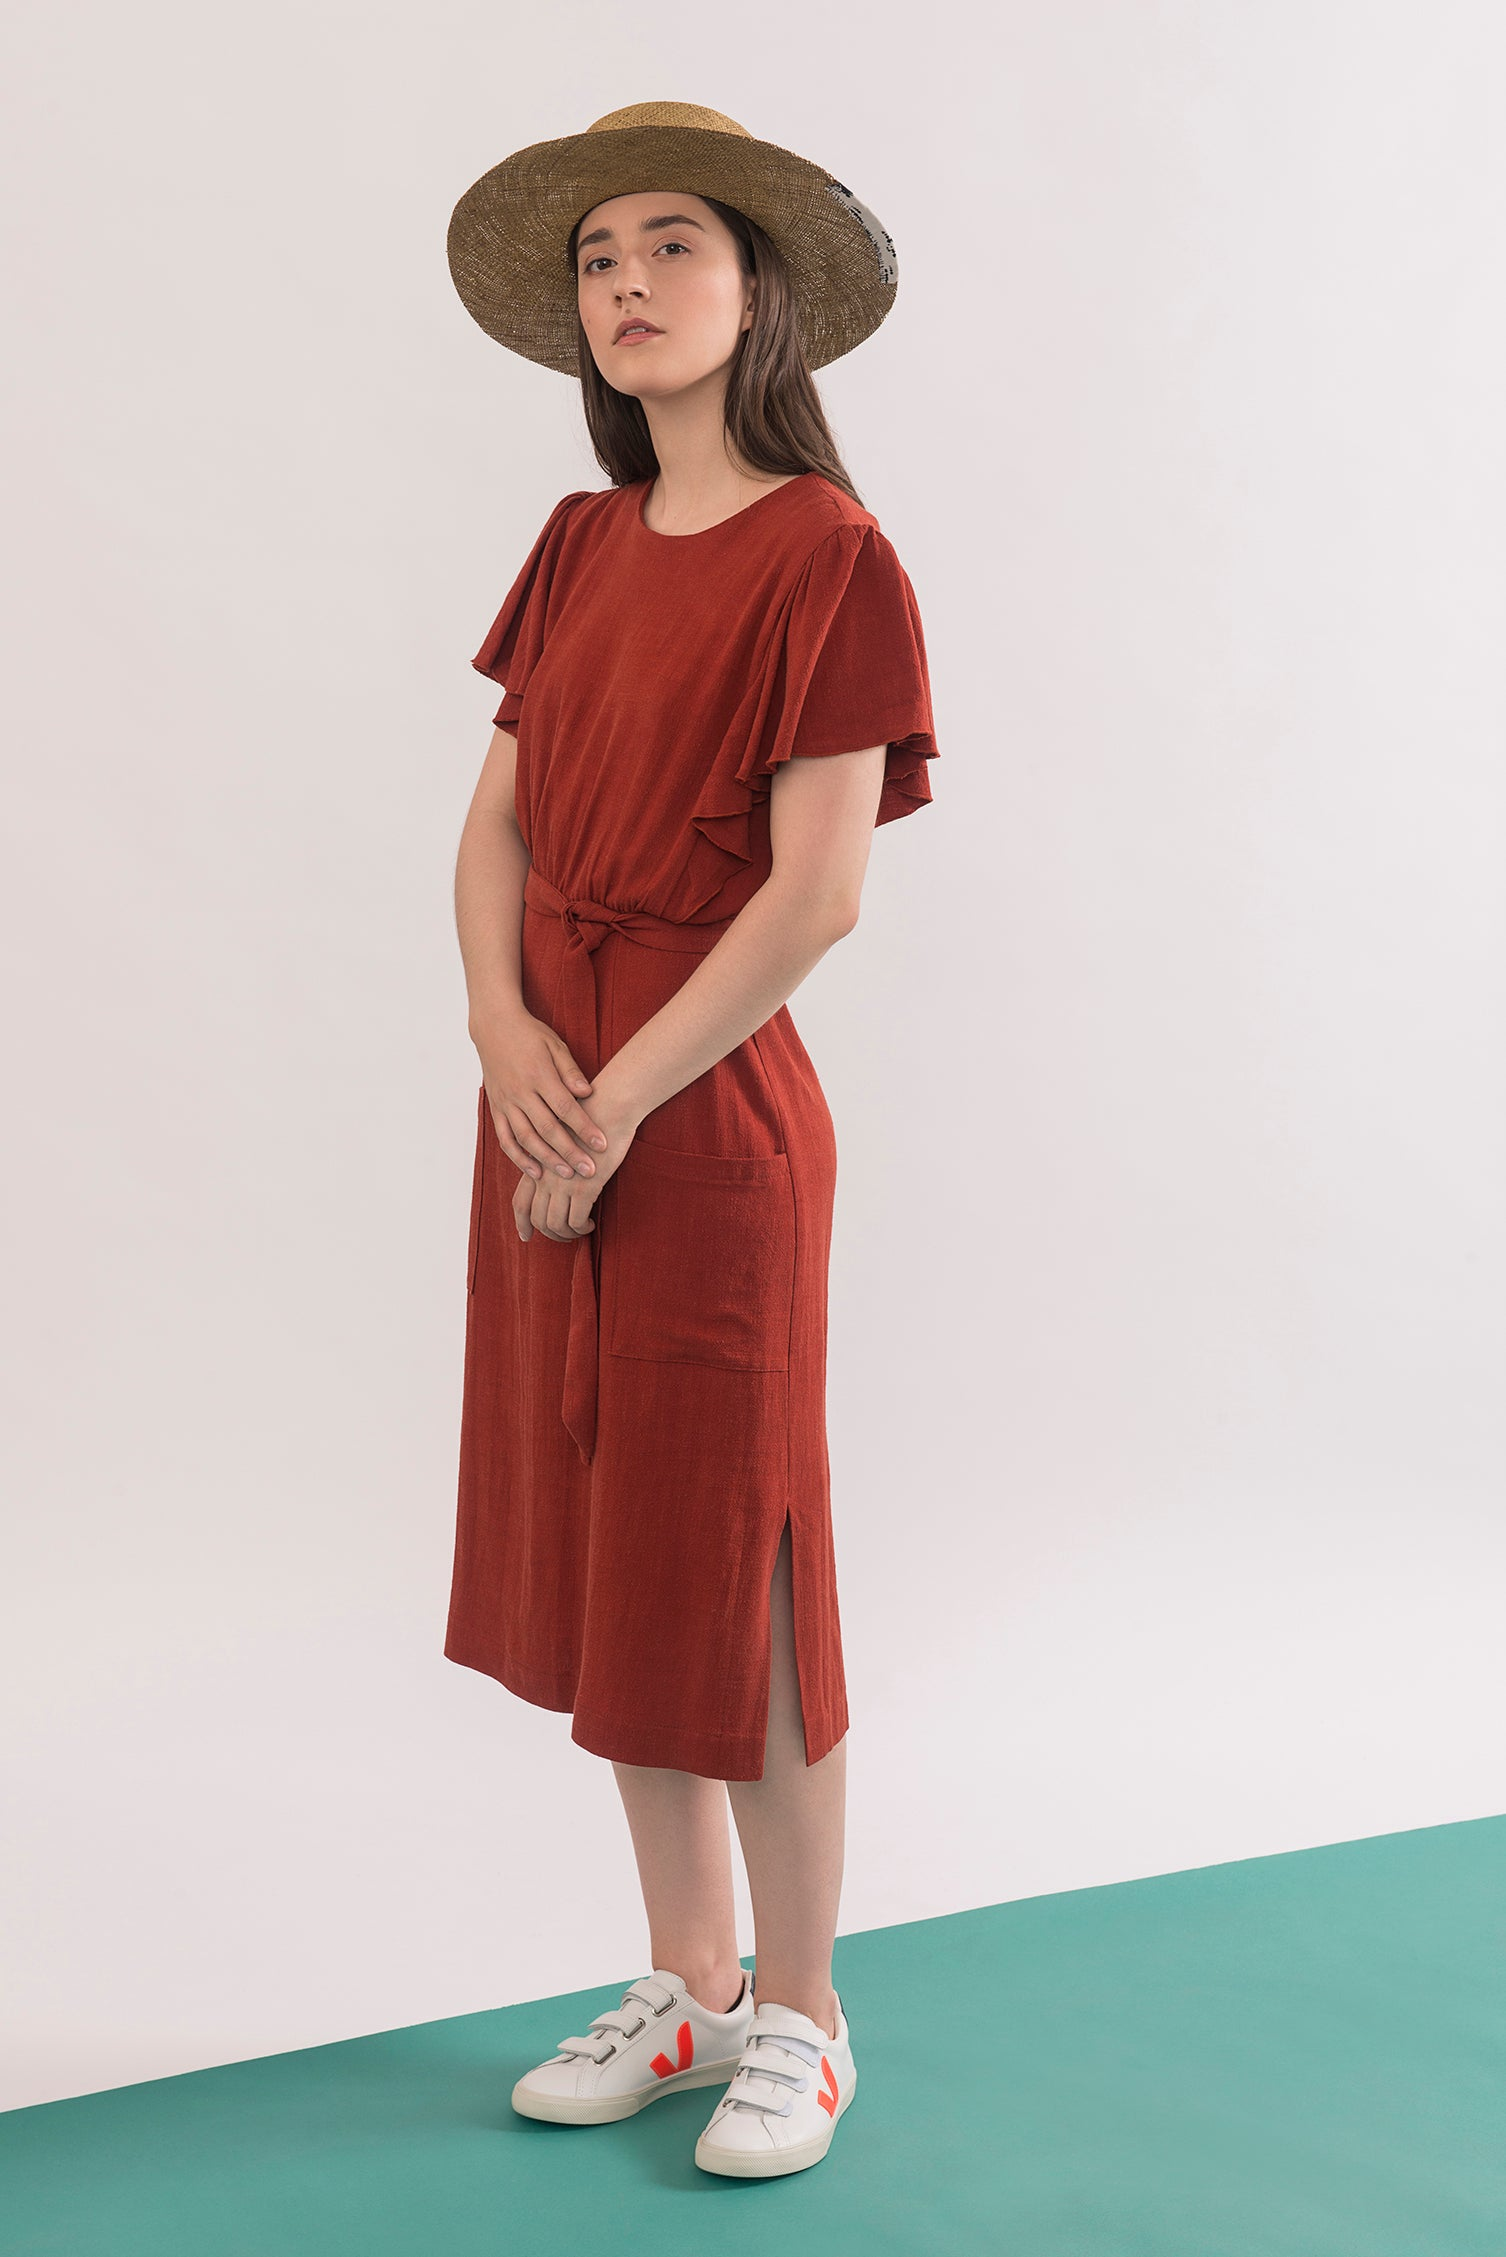 Klee Dress by Jennifer Glasgow, Electric Squash, flowing draped sleeves, mid-length, patch pockets, side vents, belt, rayon and linen, sizes XS to XL, made in Montreal